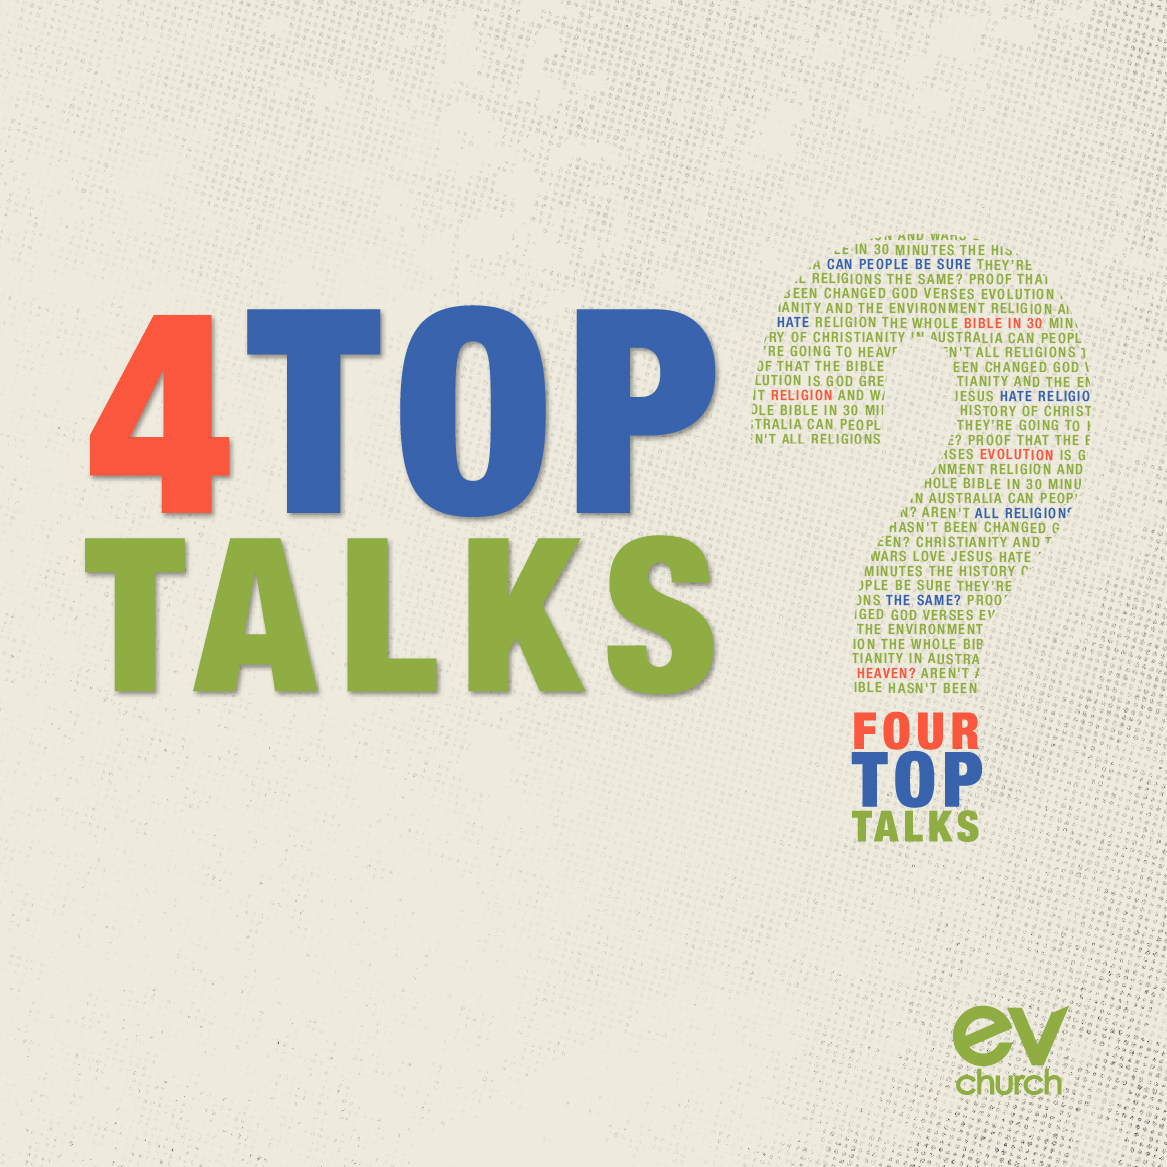 Four Top Talks